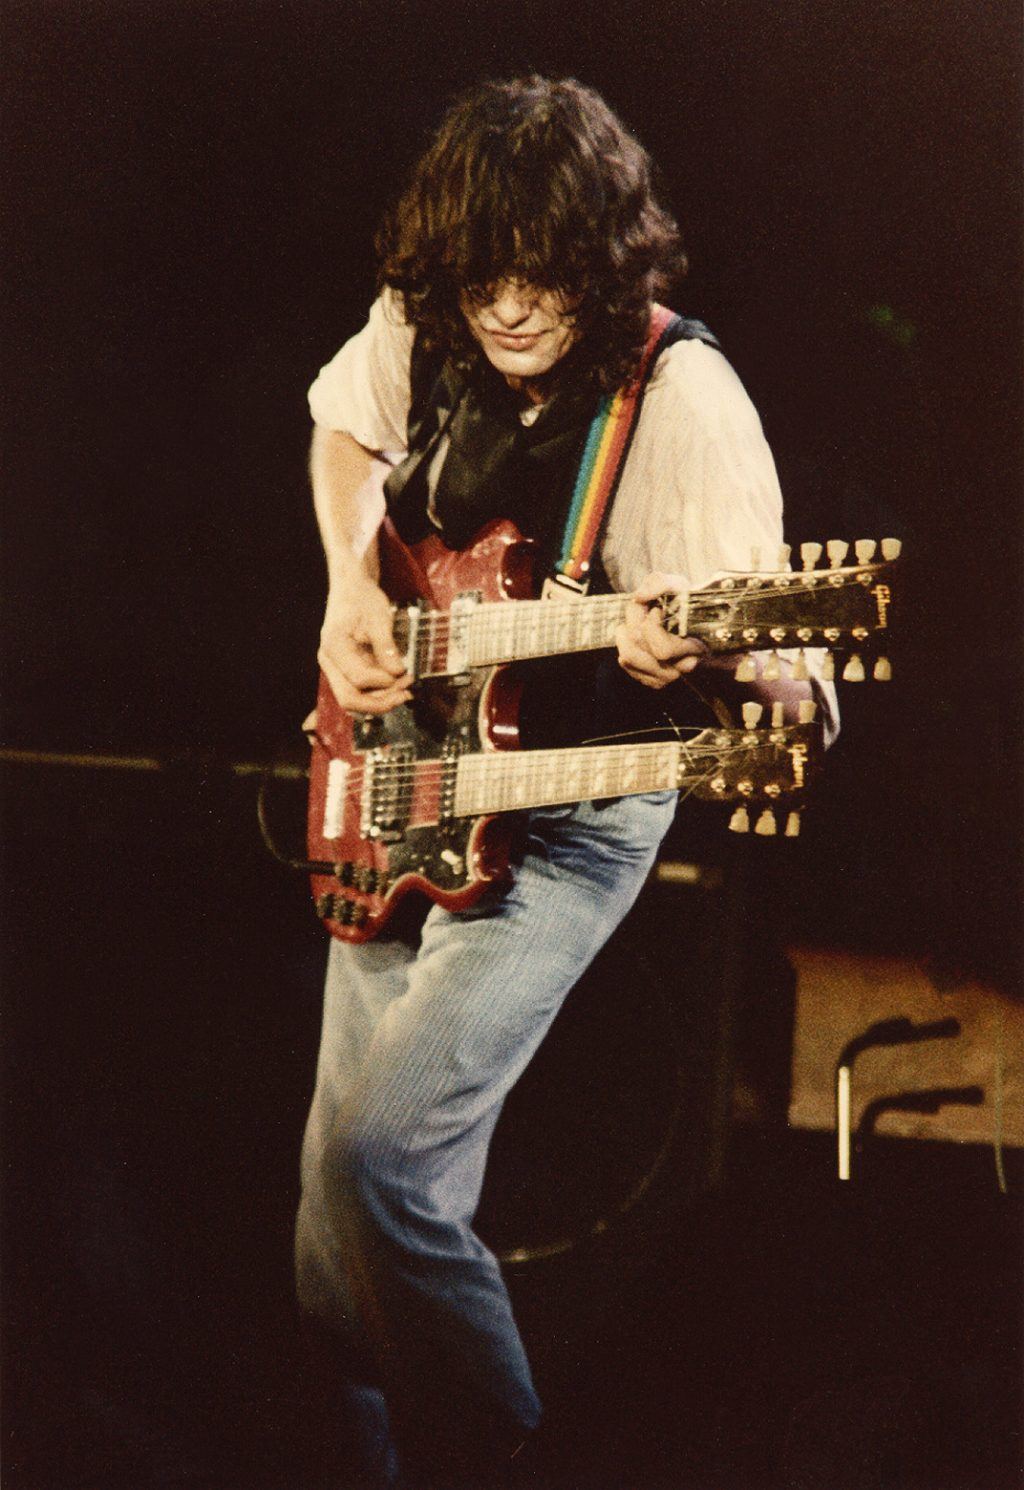 Jimmy Page (Led Zeppelin) Style Solo